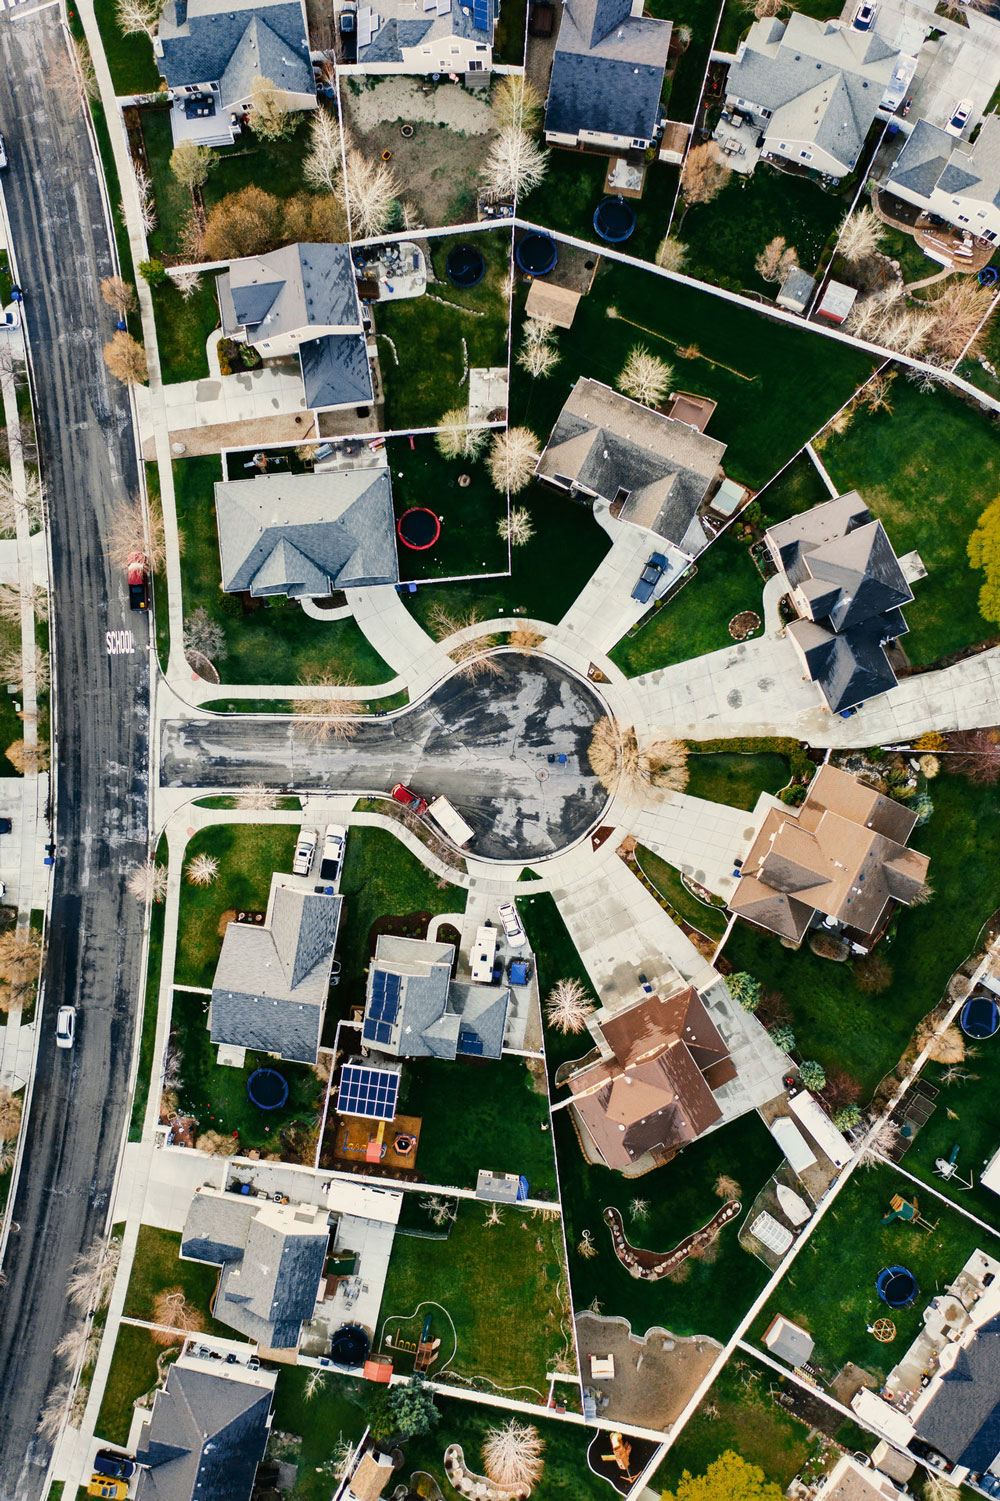 Arial View of Suburban Neighborhood